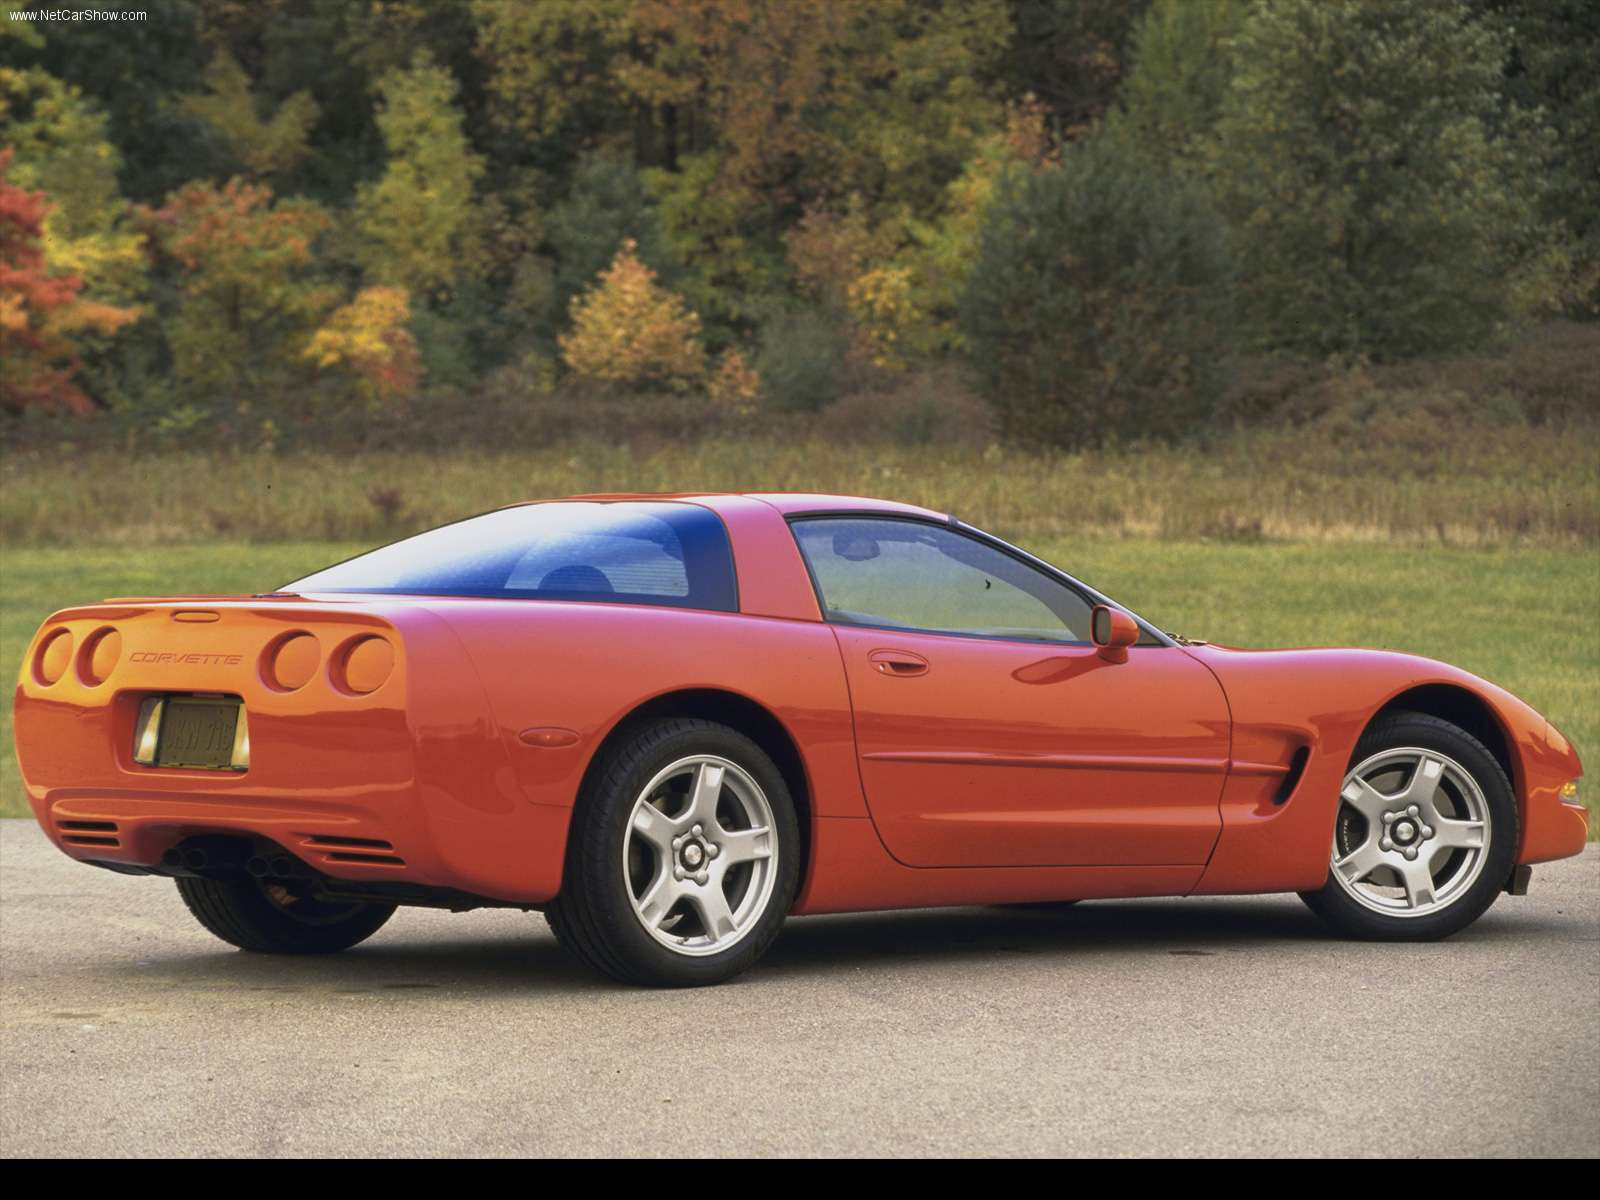 Chevrolet Corvette_C5 1997 1600 0e 1997 c5 corvette ultimate guide (overview, specs, vin info  at virtualis.co